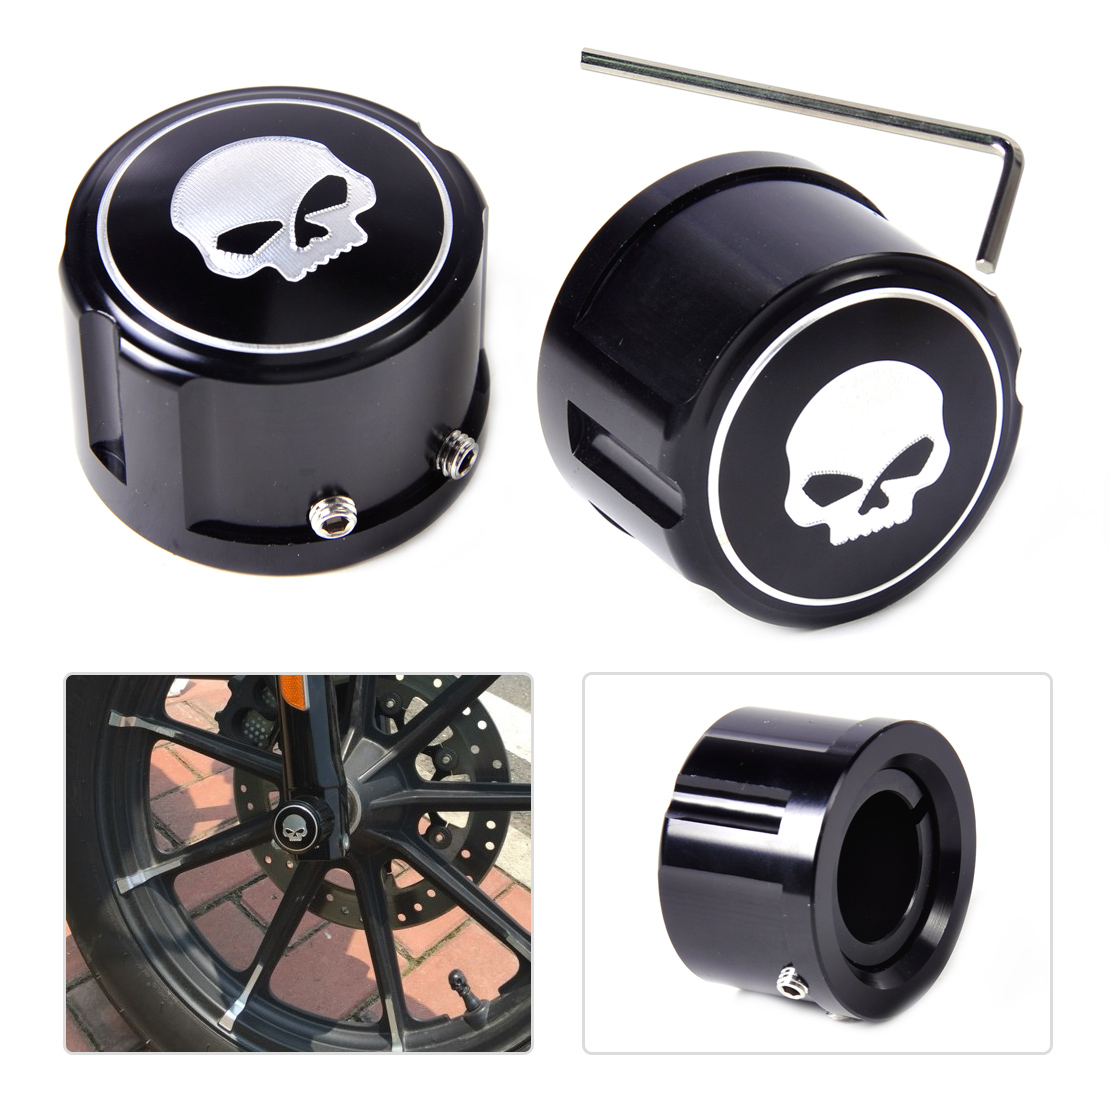 DWCX Motorcycle 2pcs Aluminum Front Skull Axle Nut Cover Cap Bolt Kit for Harley VRSC XG XL Softail Touring Trike model Dyna купить